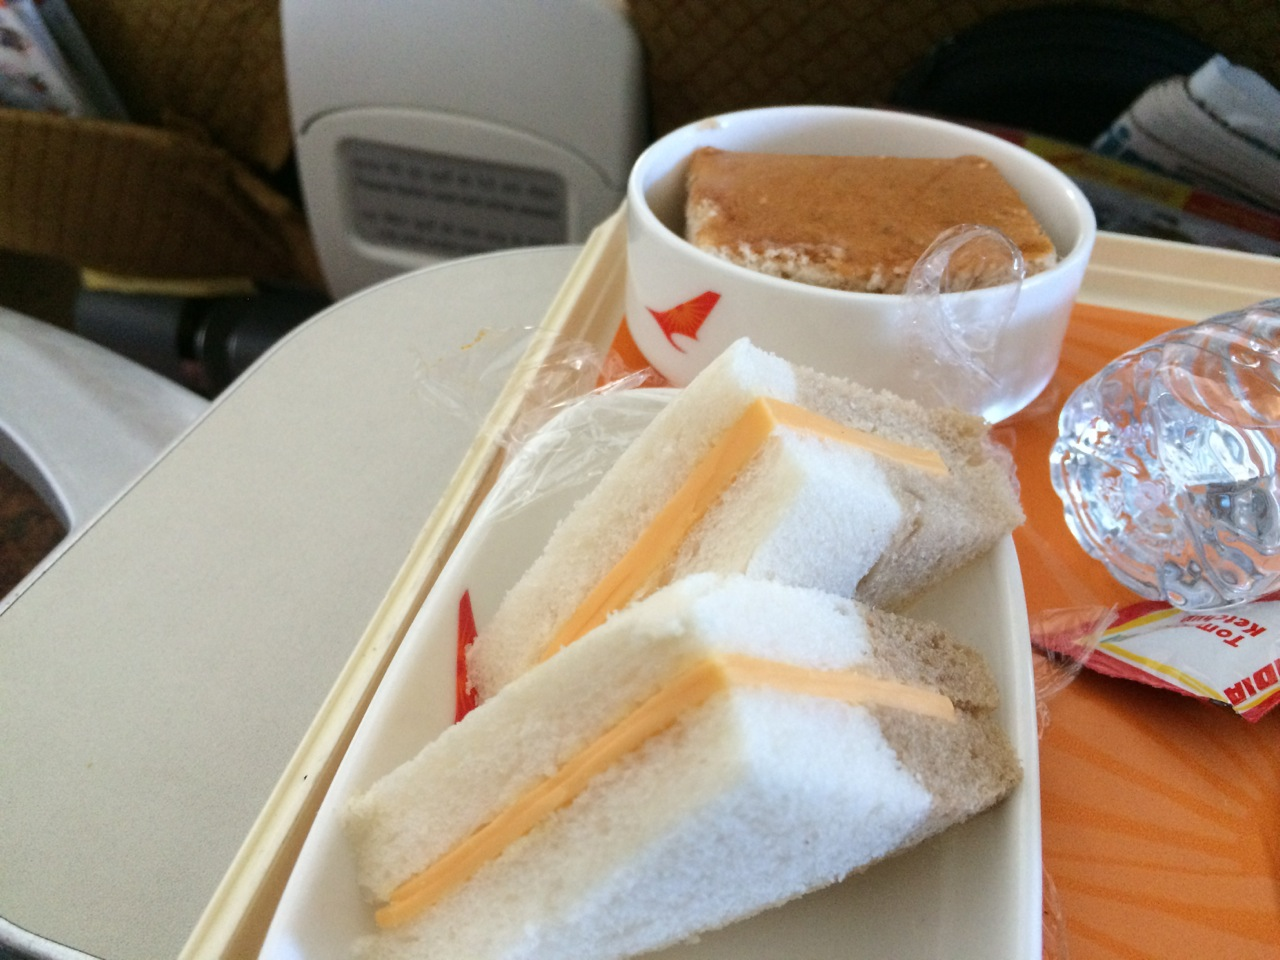 Cake Making Classes In Jaipur : Air India Business Class to Jaipur SFO777